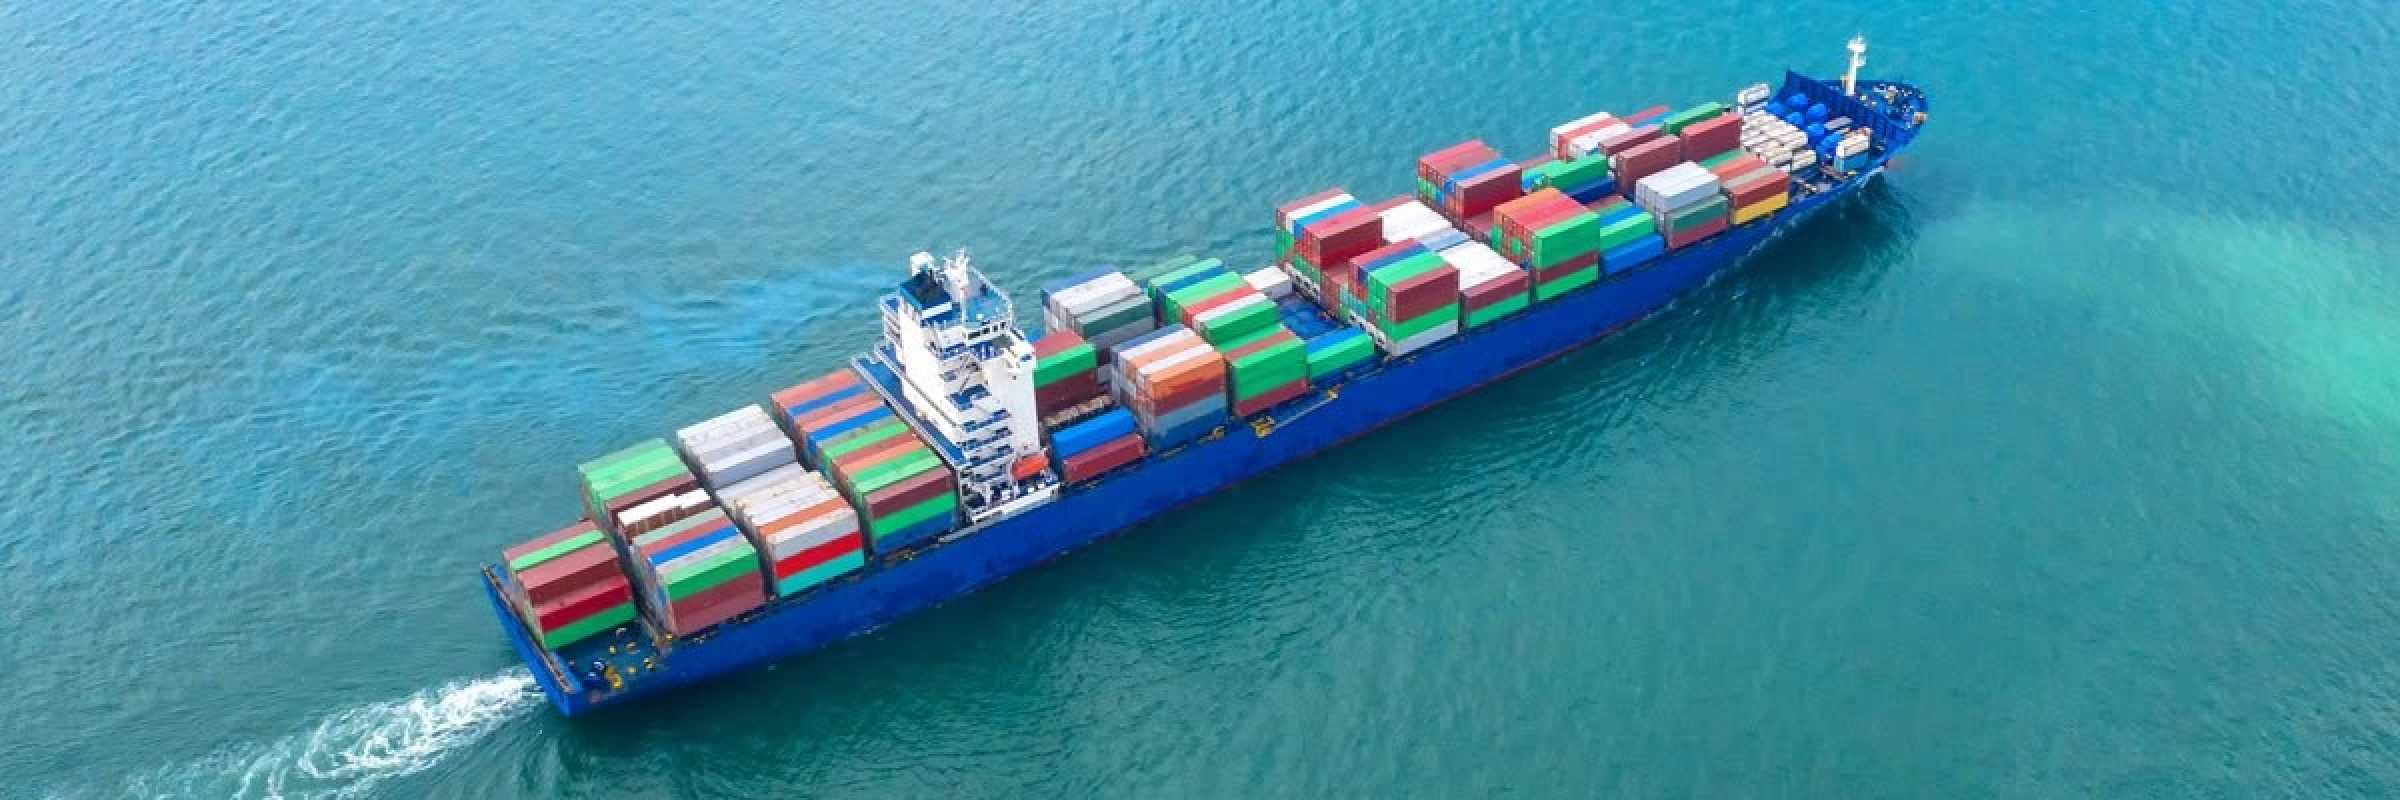 MOL to market ballast checking system